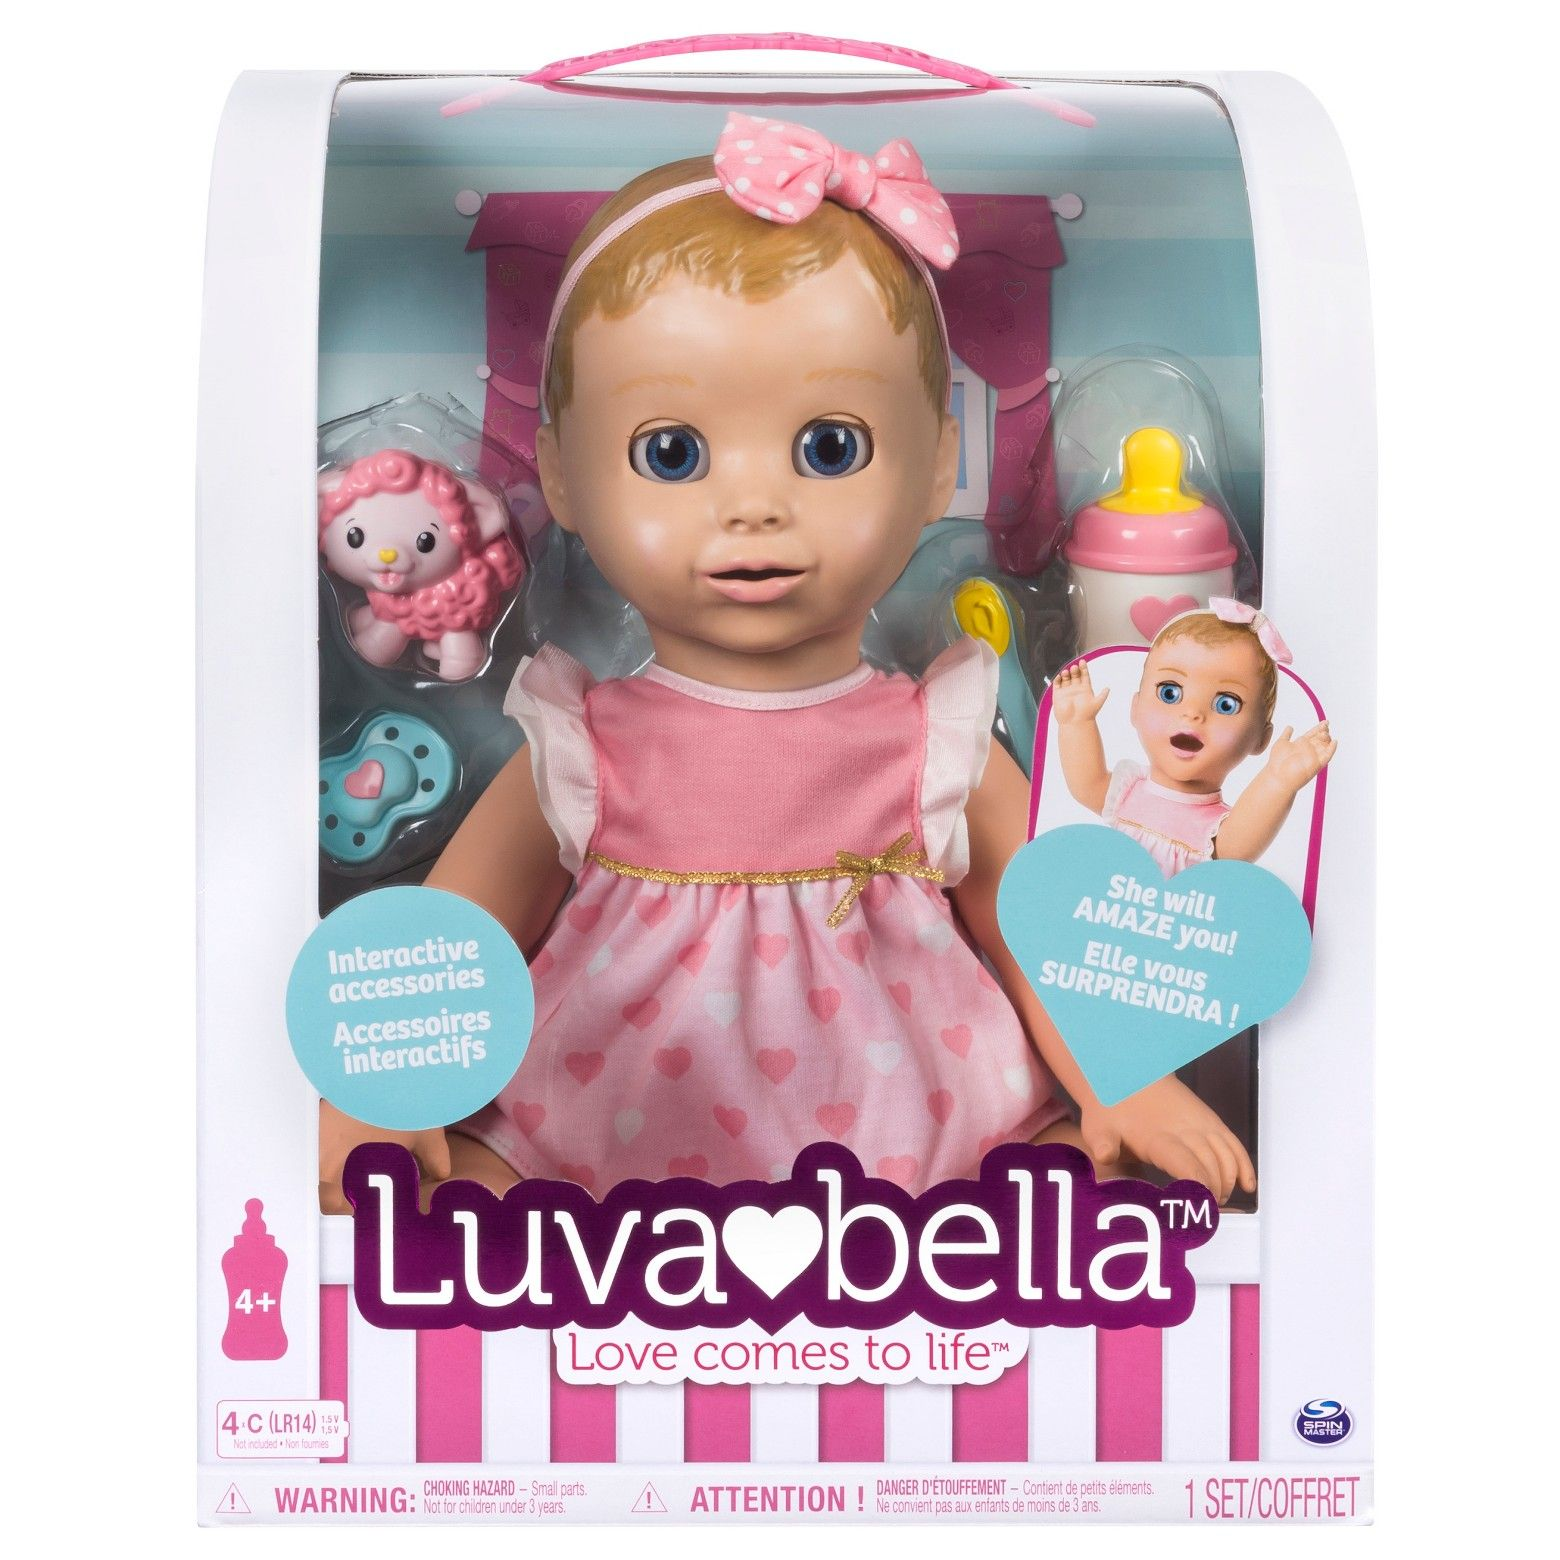 Luvabella Responsive Baby Doll With Realistic Expressions And Movement